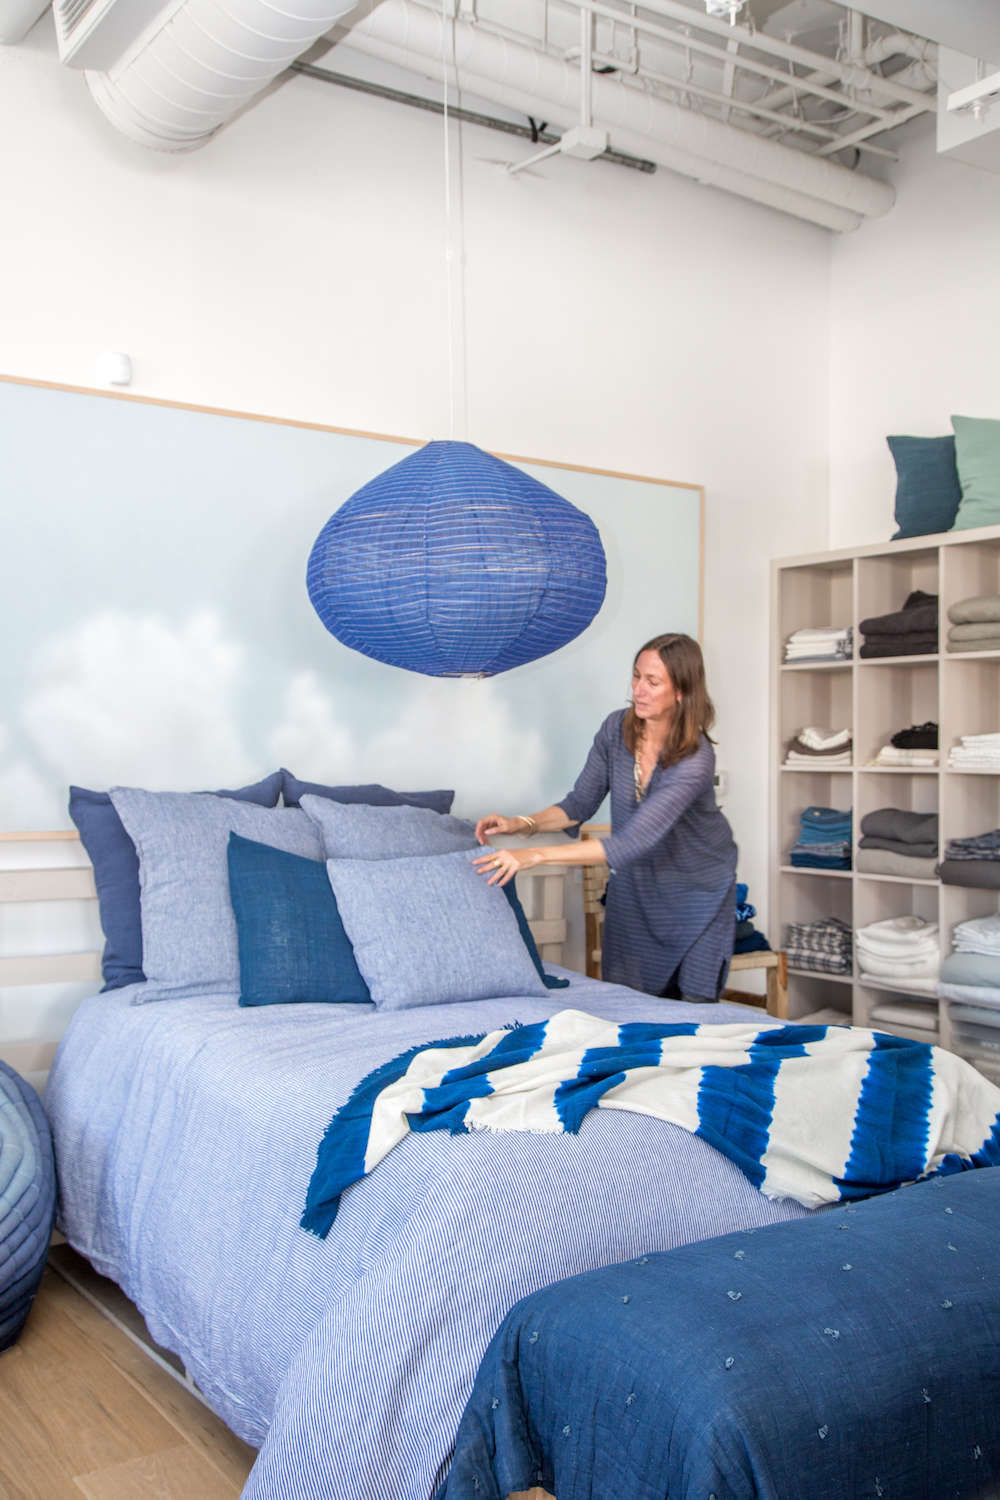 Modern blue bedding, light and dark blue, with fabric covered light fixture